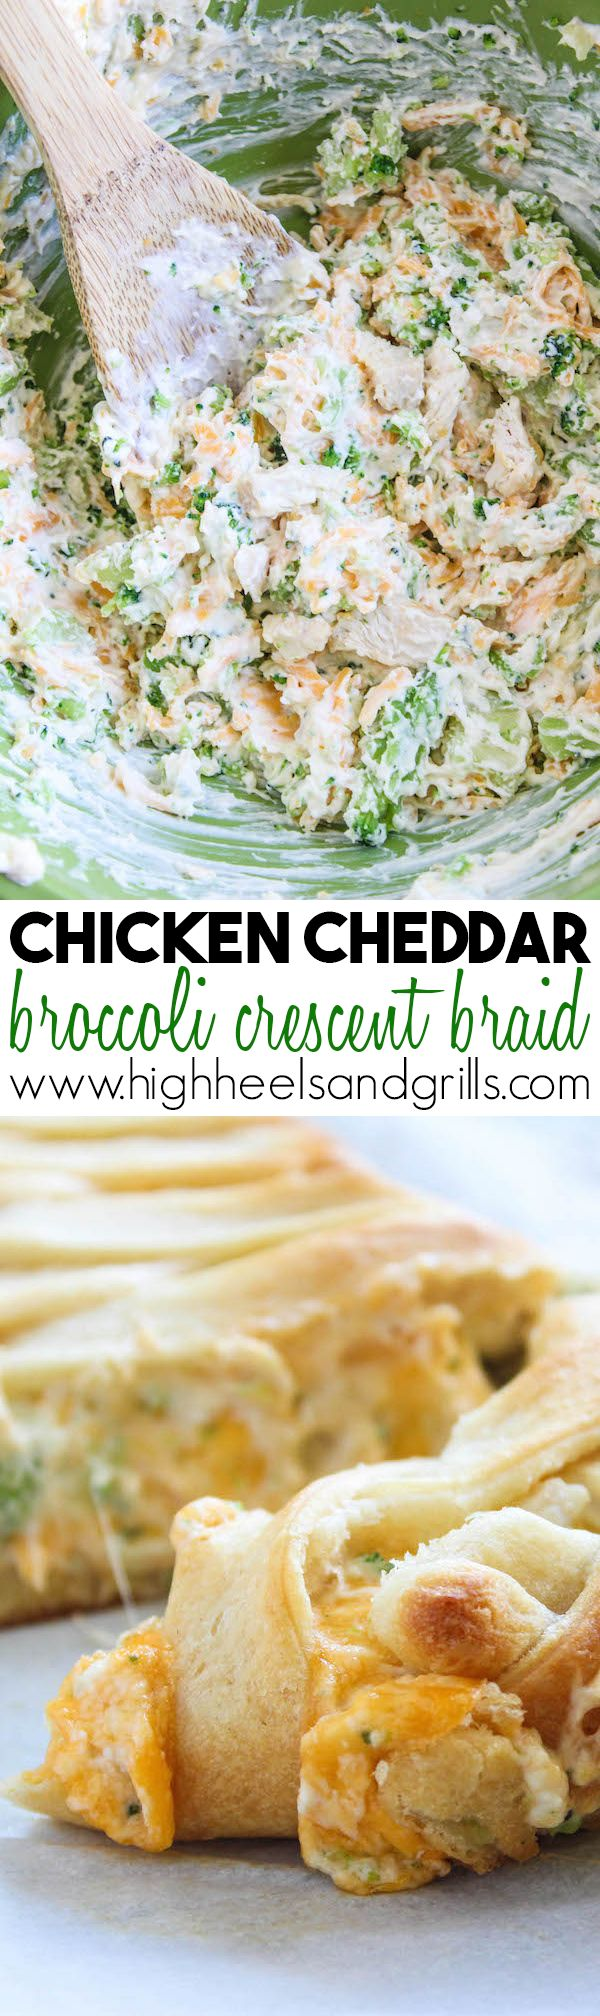 Celebrity Quotes: This Chicken Cheddar Broccoli Crescent